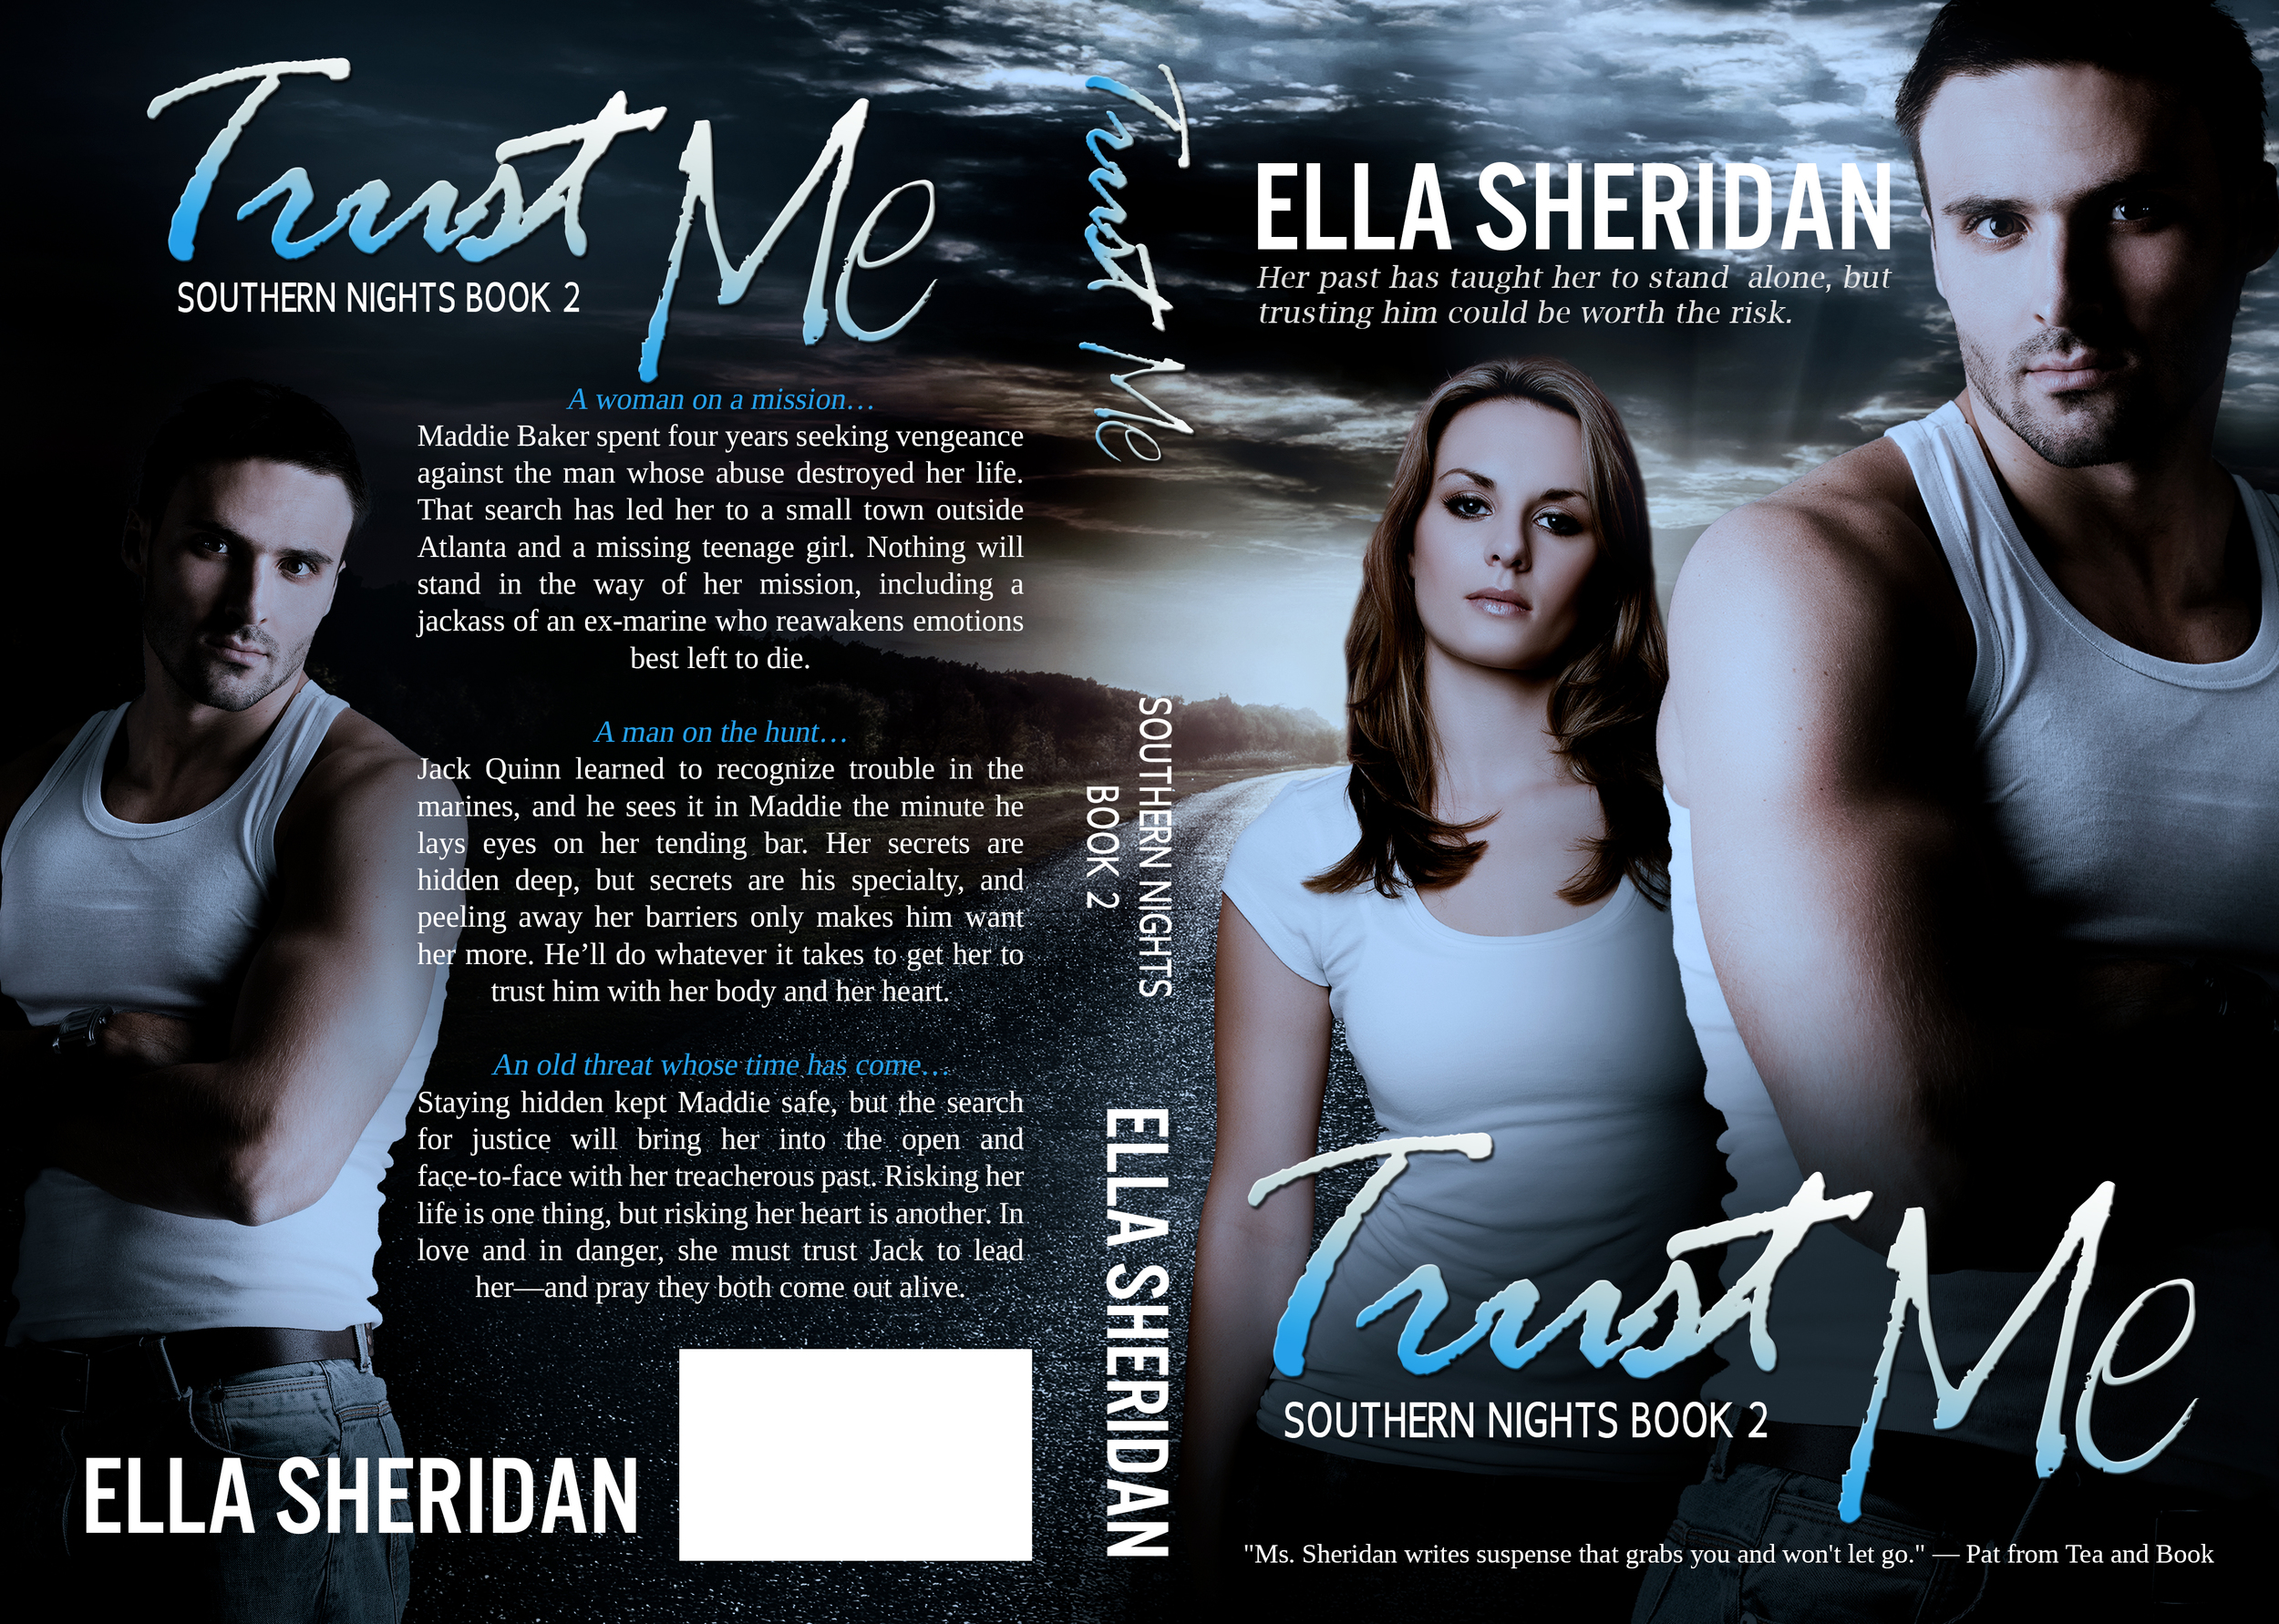 ella sheridan, author, writer, romance author, contemporary romance, romantic suspense, erotic romance, trust me, southern nights series, romance series